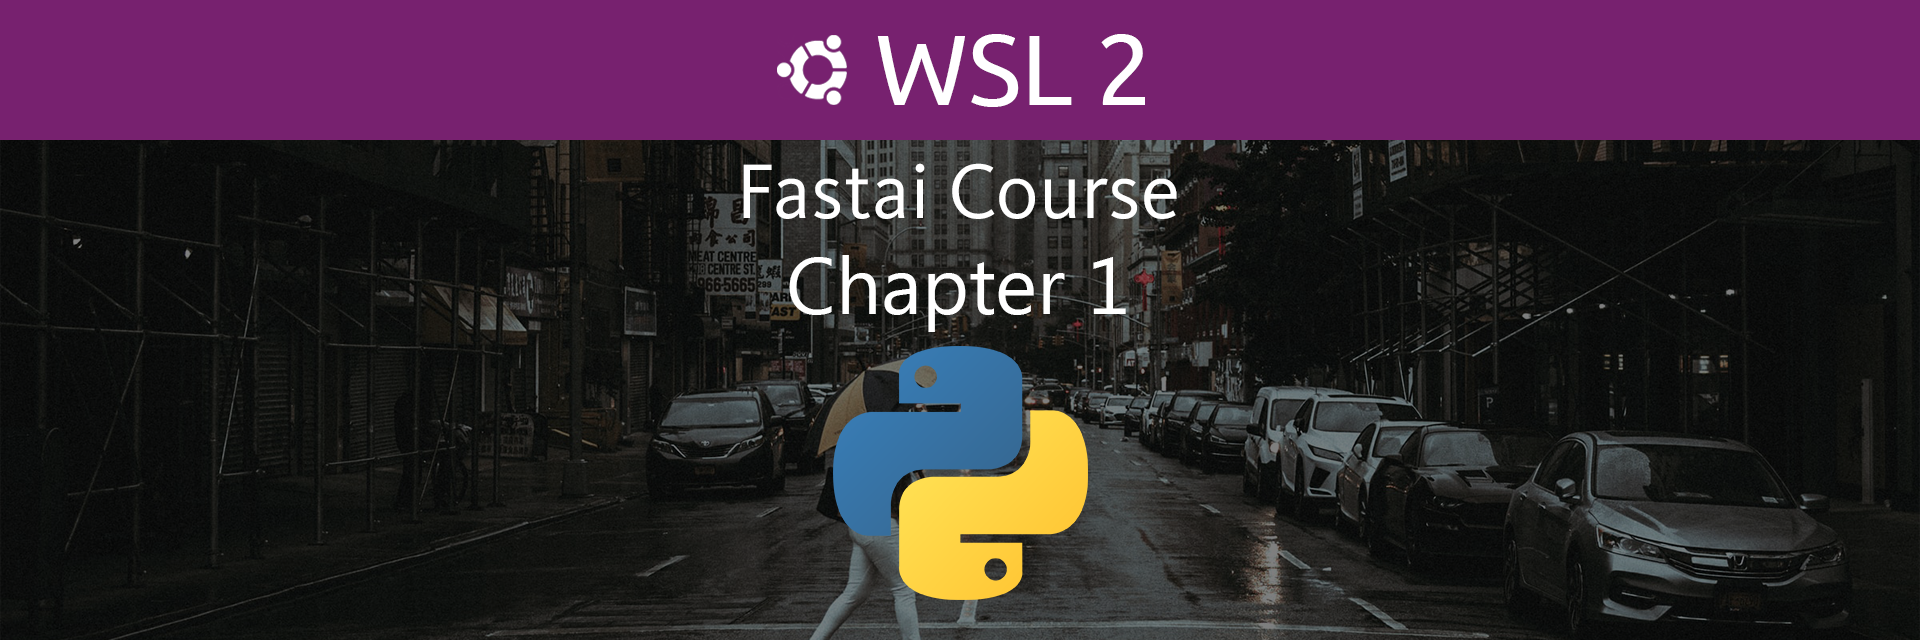 Fastai Course Chapter 1 on WSL2